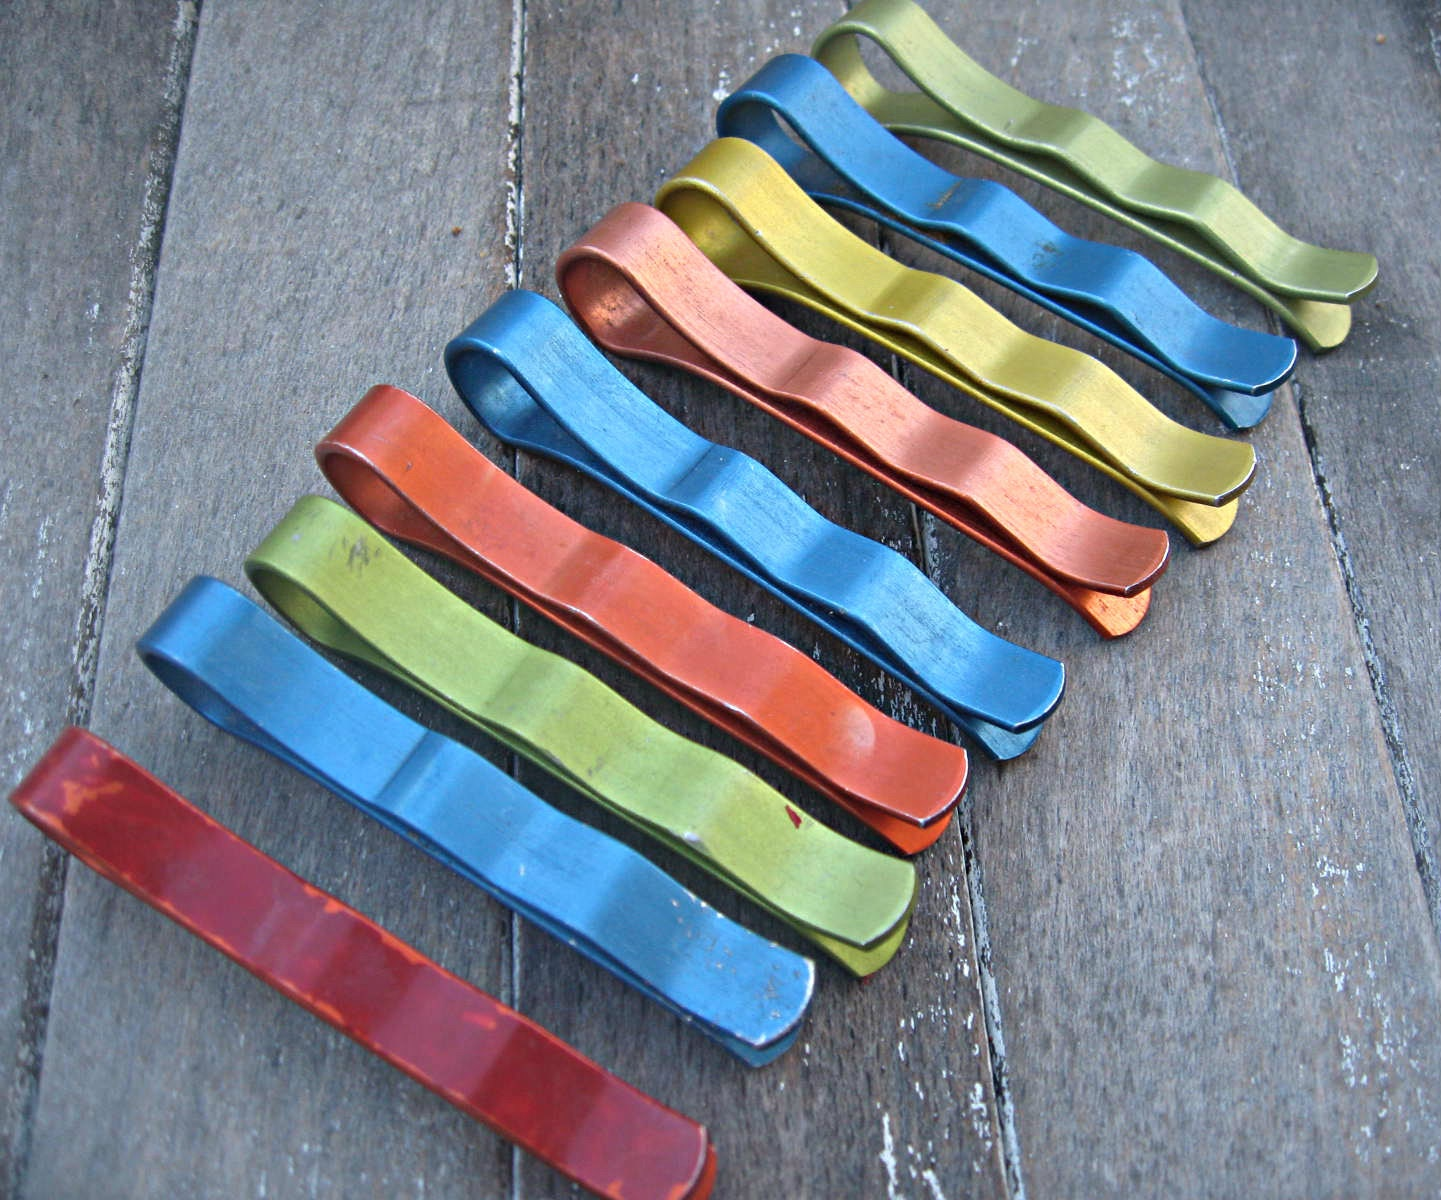 Vintage aluminum clothespins, Hollywood pin-ups, retro, mid-century